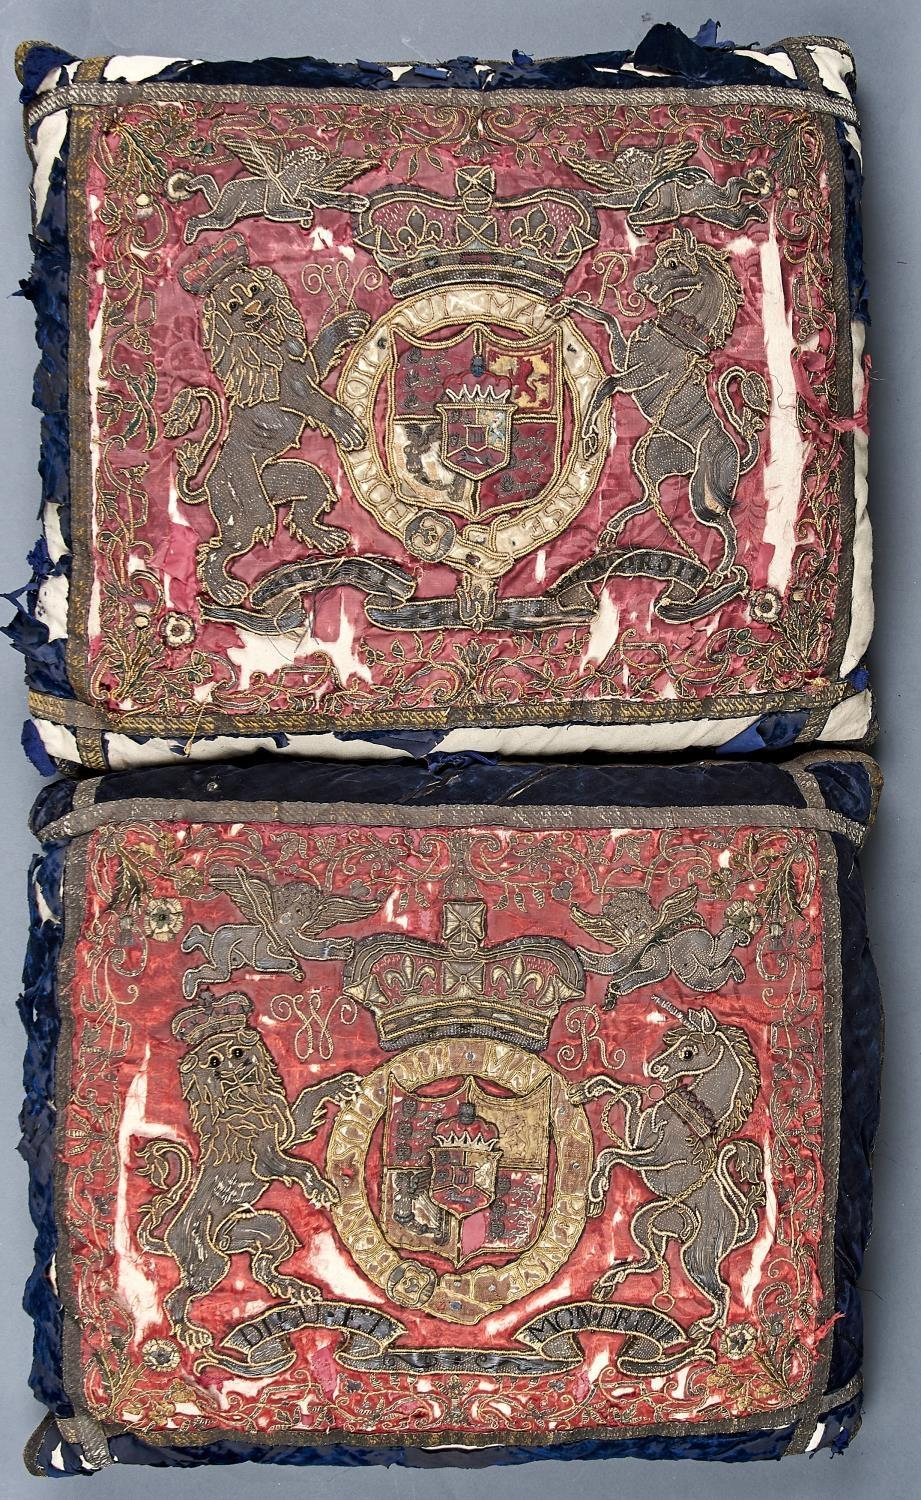 TWO WILLIAM IV TRUMPET BANNERS, 1816-37, OF CRIMSON DAMASK EMBROIDERED IN SILK AND METAL THREAD,